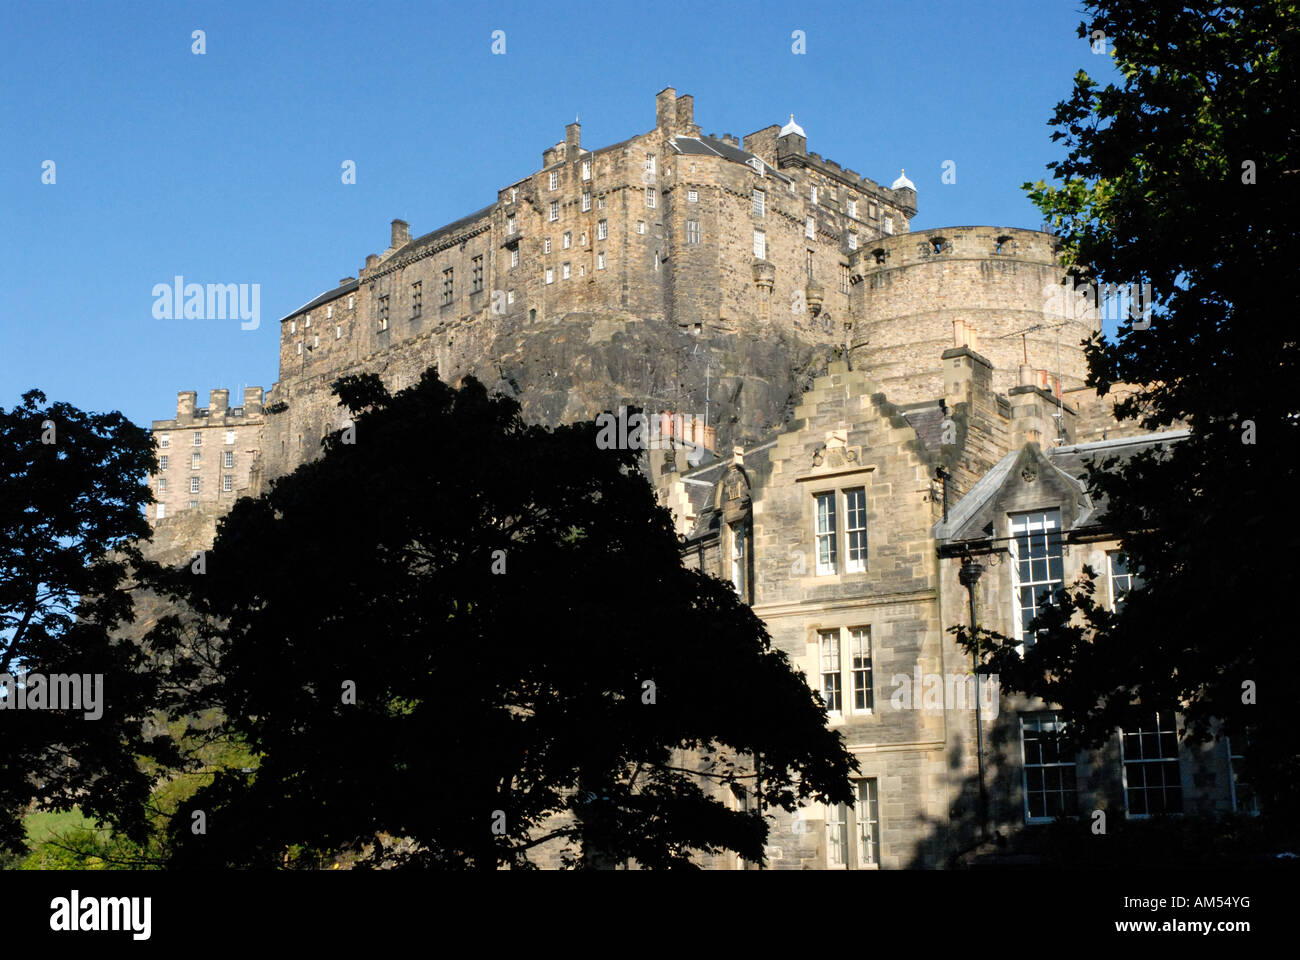 stock edinburgh castle - photo #10